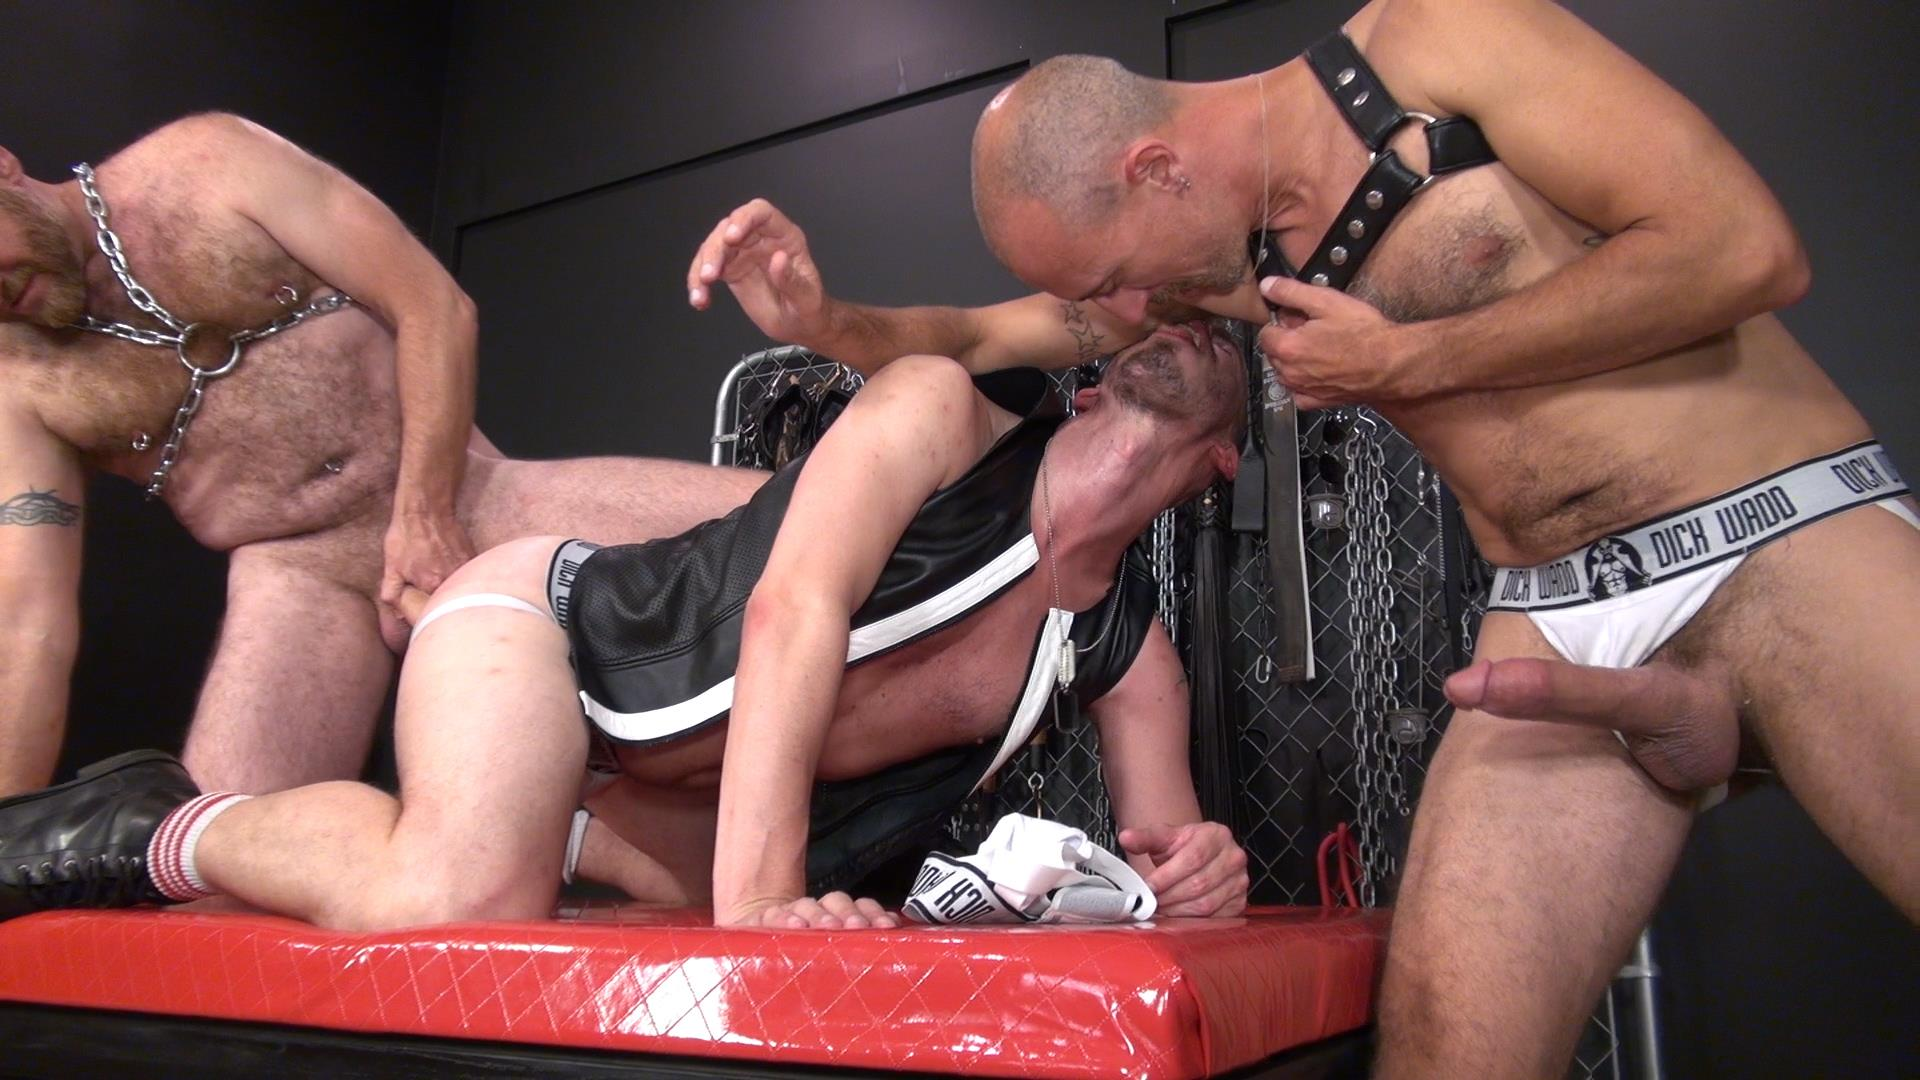 Raw-and-Rough-Nick-Roberts-and-Jason-Stormme-and-Super-Steve-Bareback-Bathhouse-Amateur-Gay-Porn-08 Jason Stormme Gets His Ass Spread Raw With 2 Bareback Cocks